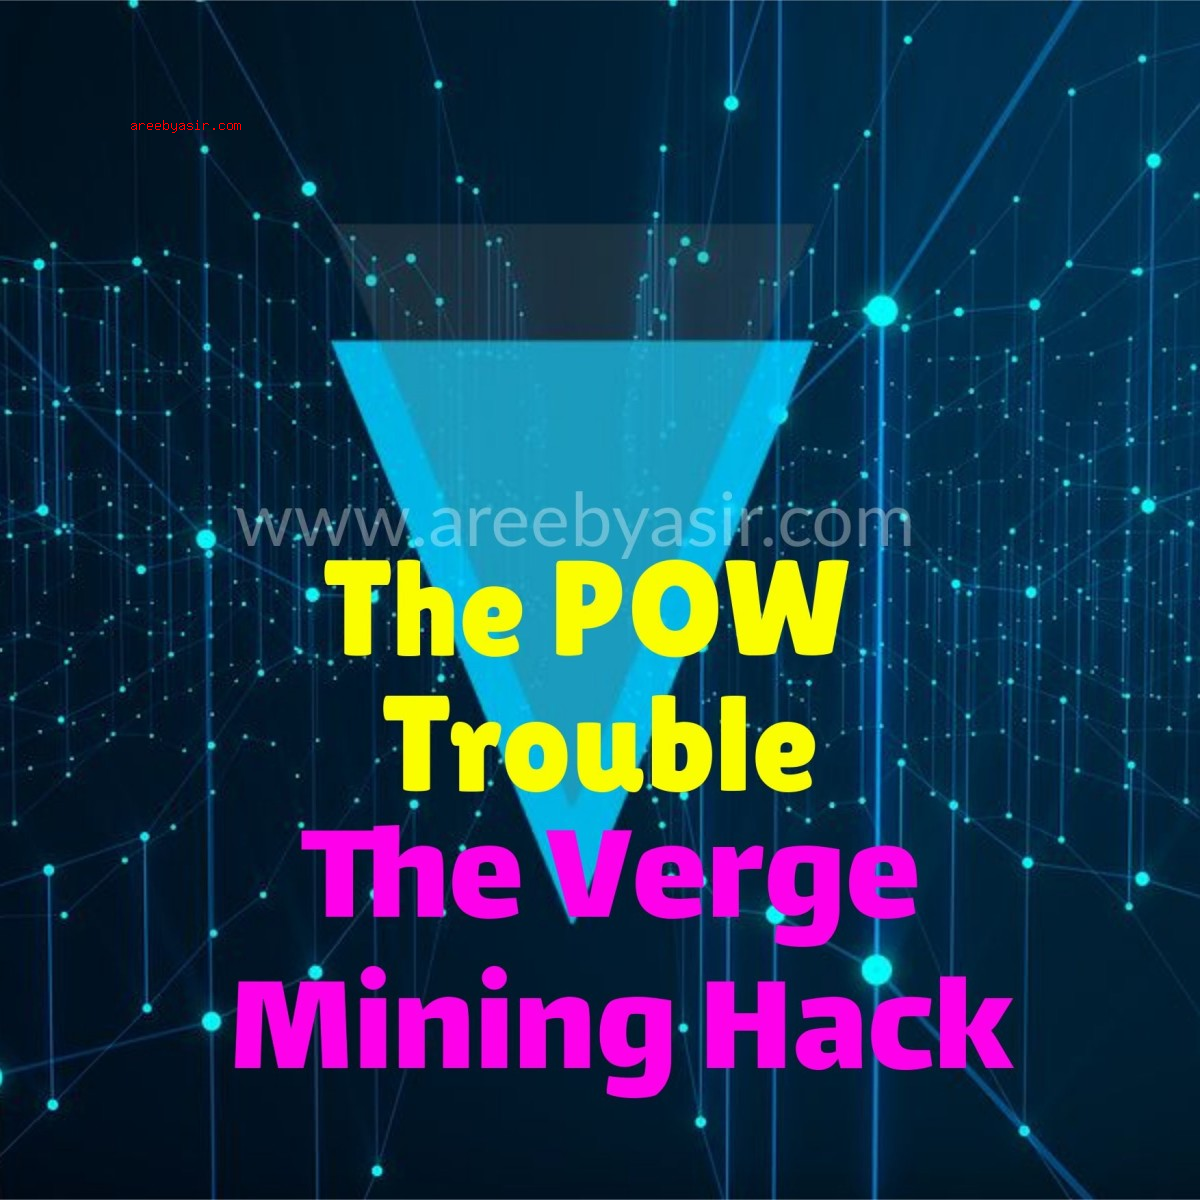 Verge XVG Mining Exploit Results in $1.1M Heist